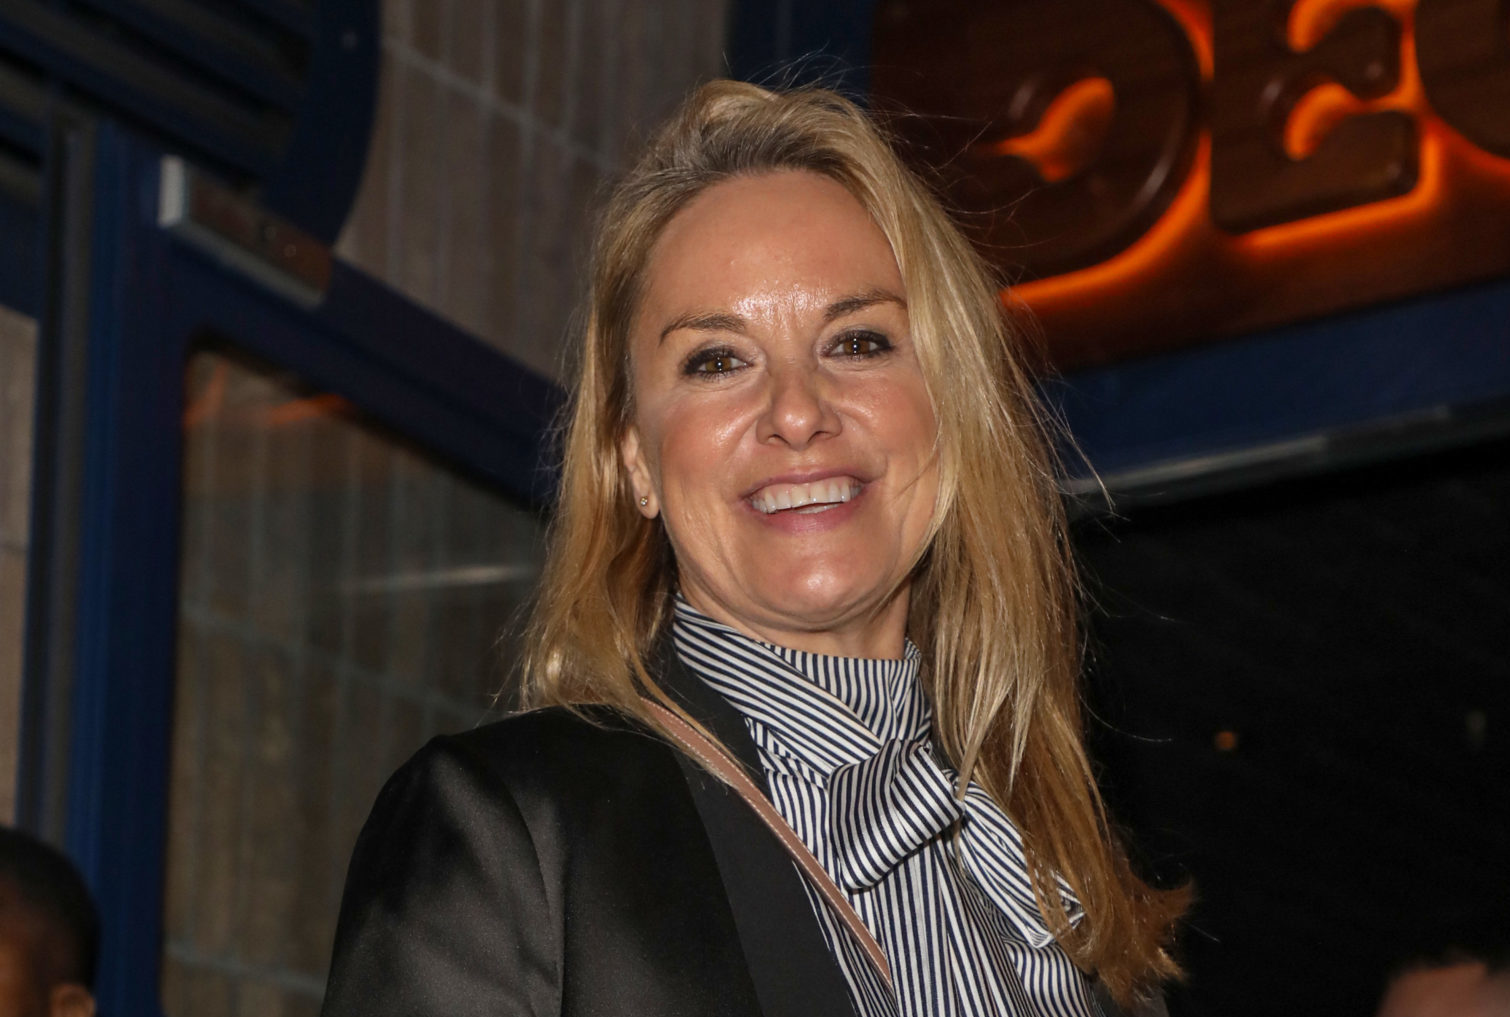 EastEnders' Tamzin Outhwaite 'to sign up for Strictly'